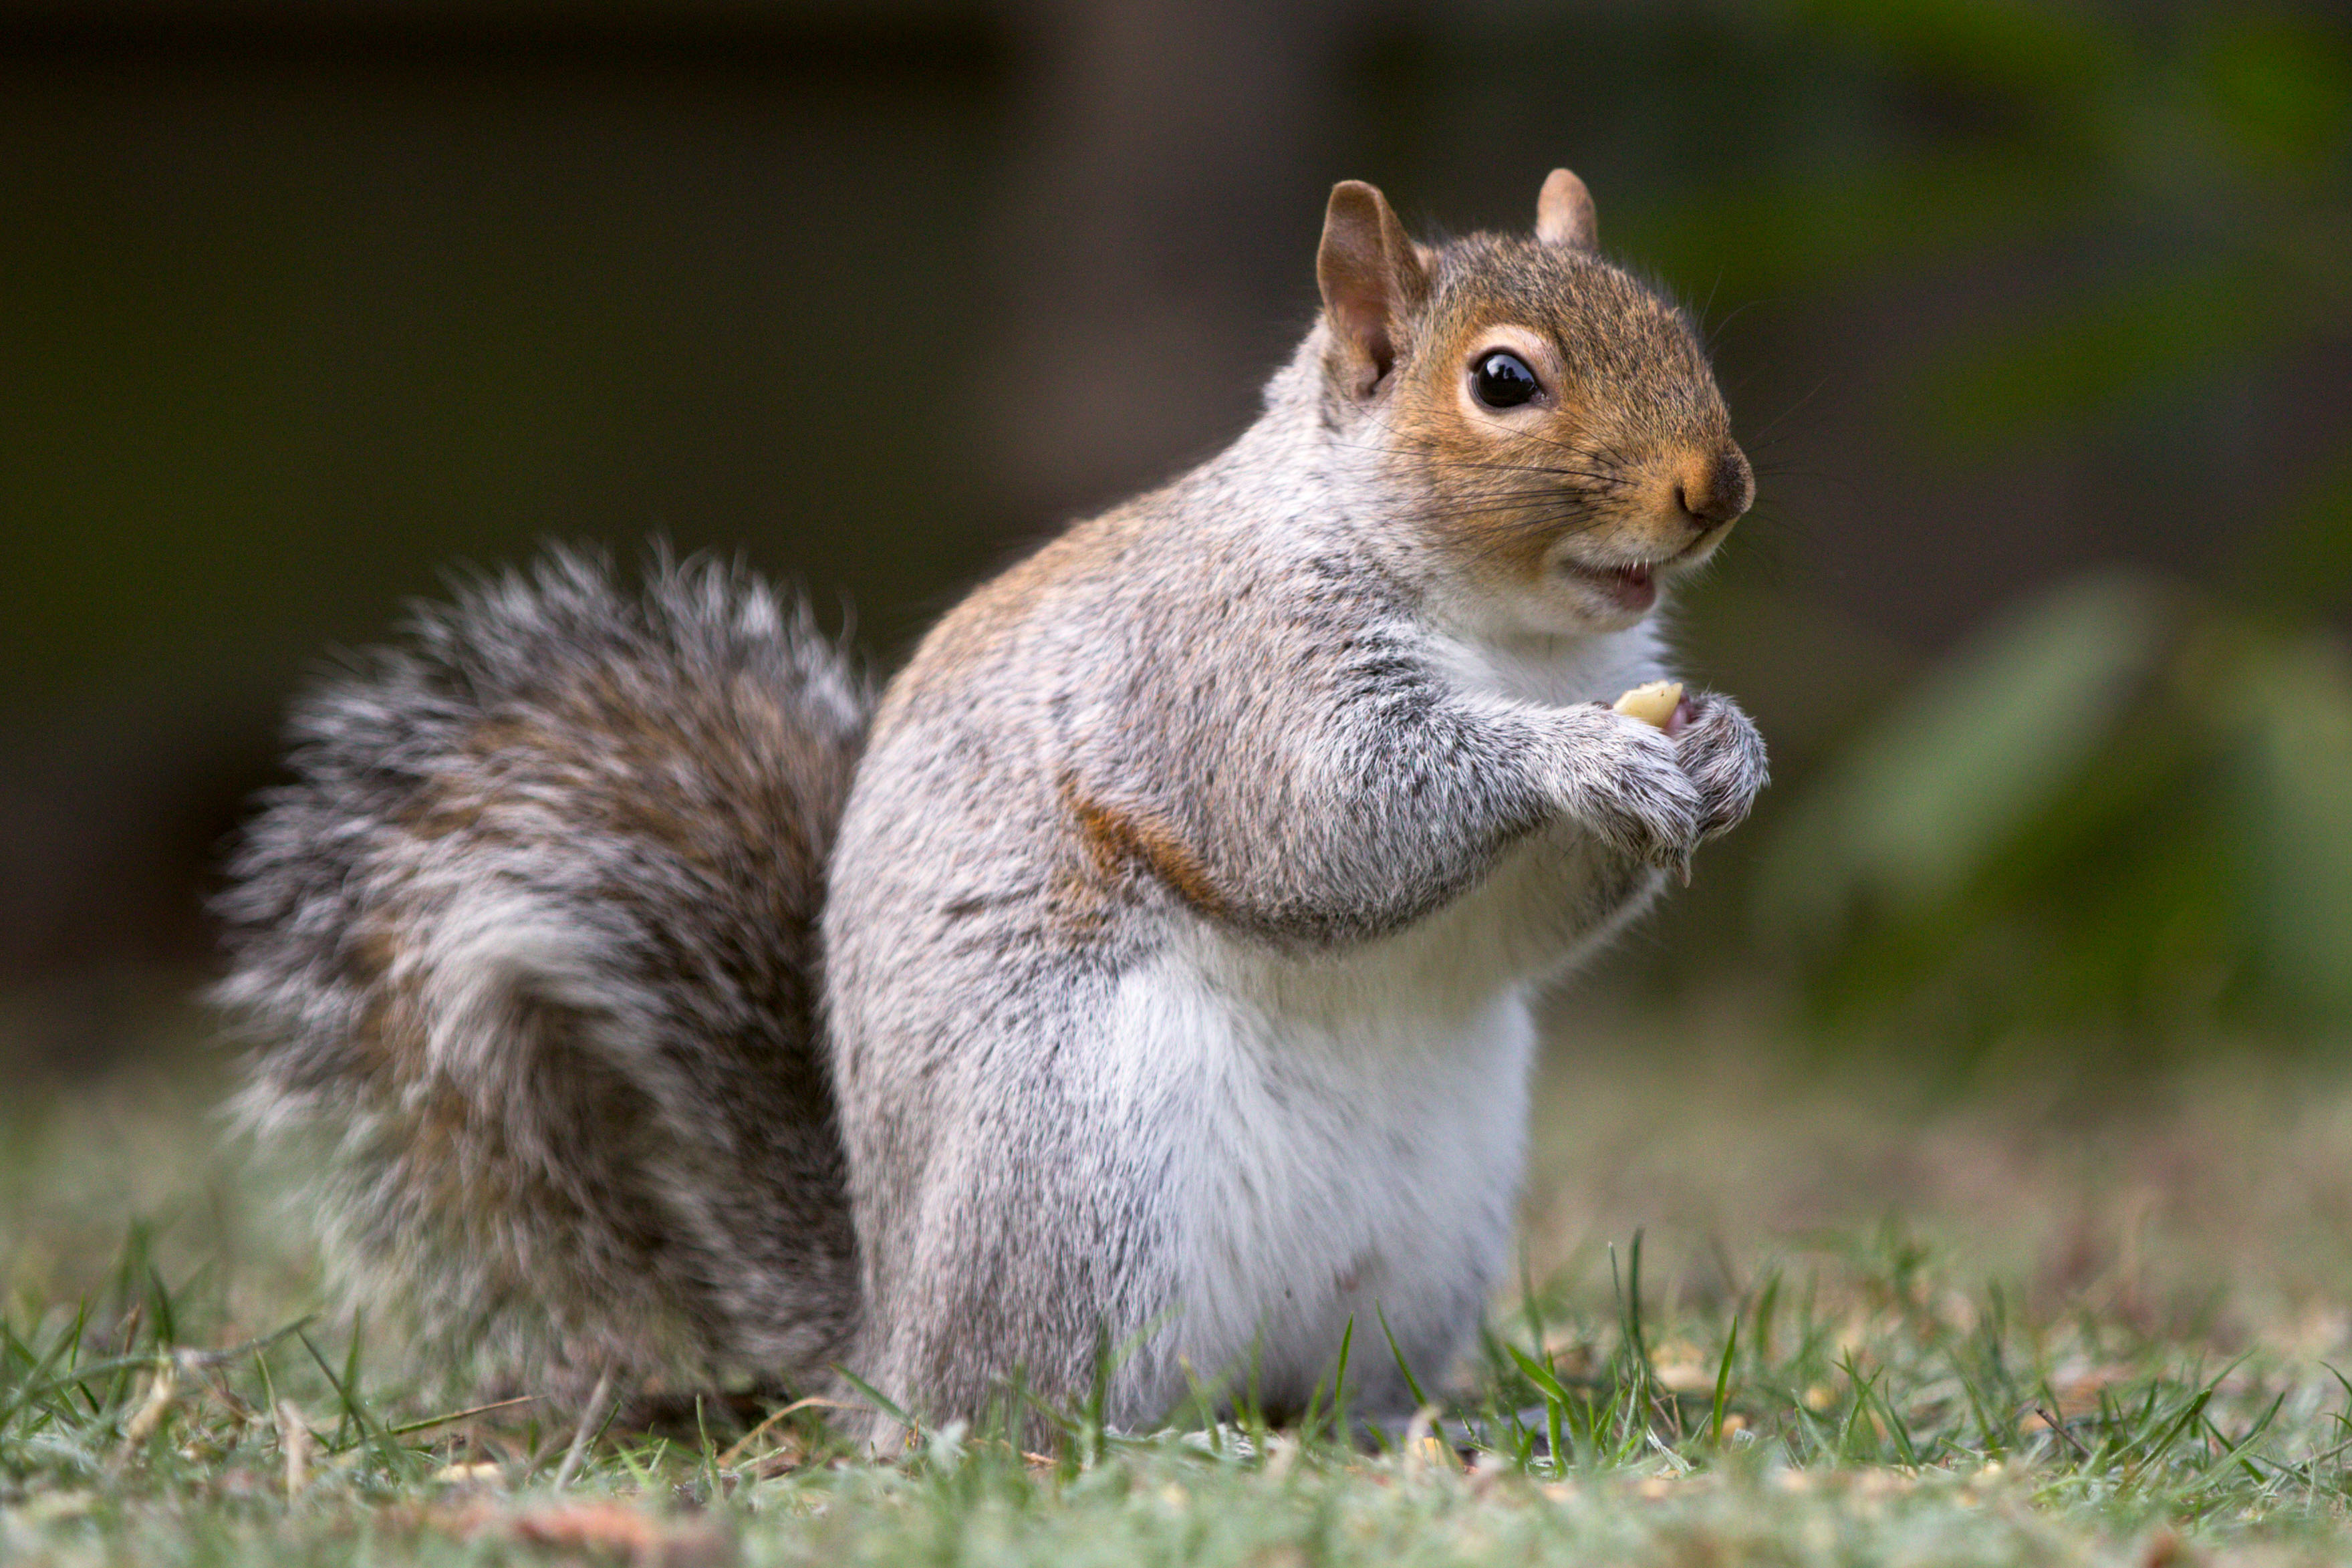 Of Bullies, Cowards and Decapitated Squirrels – The Hope Blog